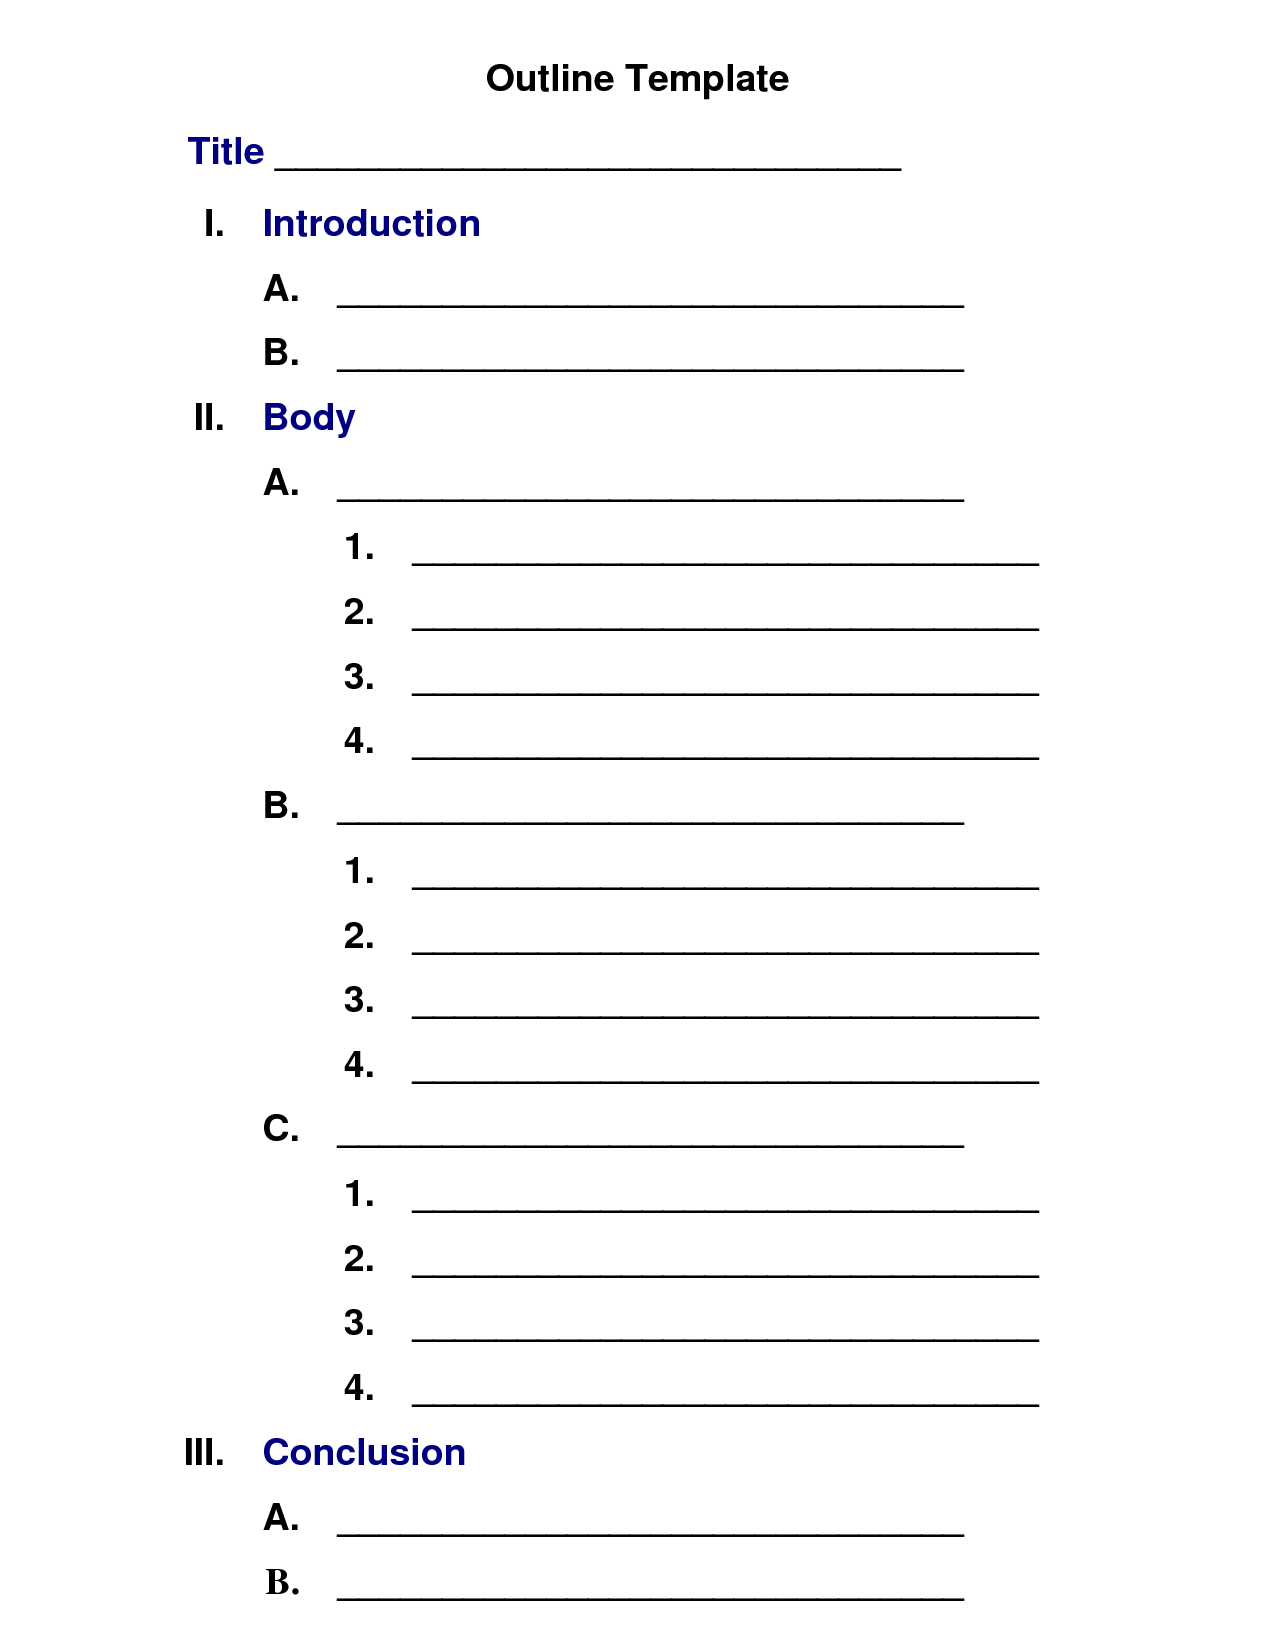 mla essay template word Mla style research paper  does your research or term paper require mla style use this accessible template to help you follow the proper guidelines includes instructional text to assist you in easily creating your report  more templates like this write a paper word general paper (circular) word executive summary word social media.